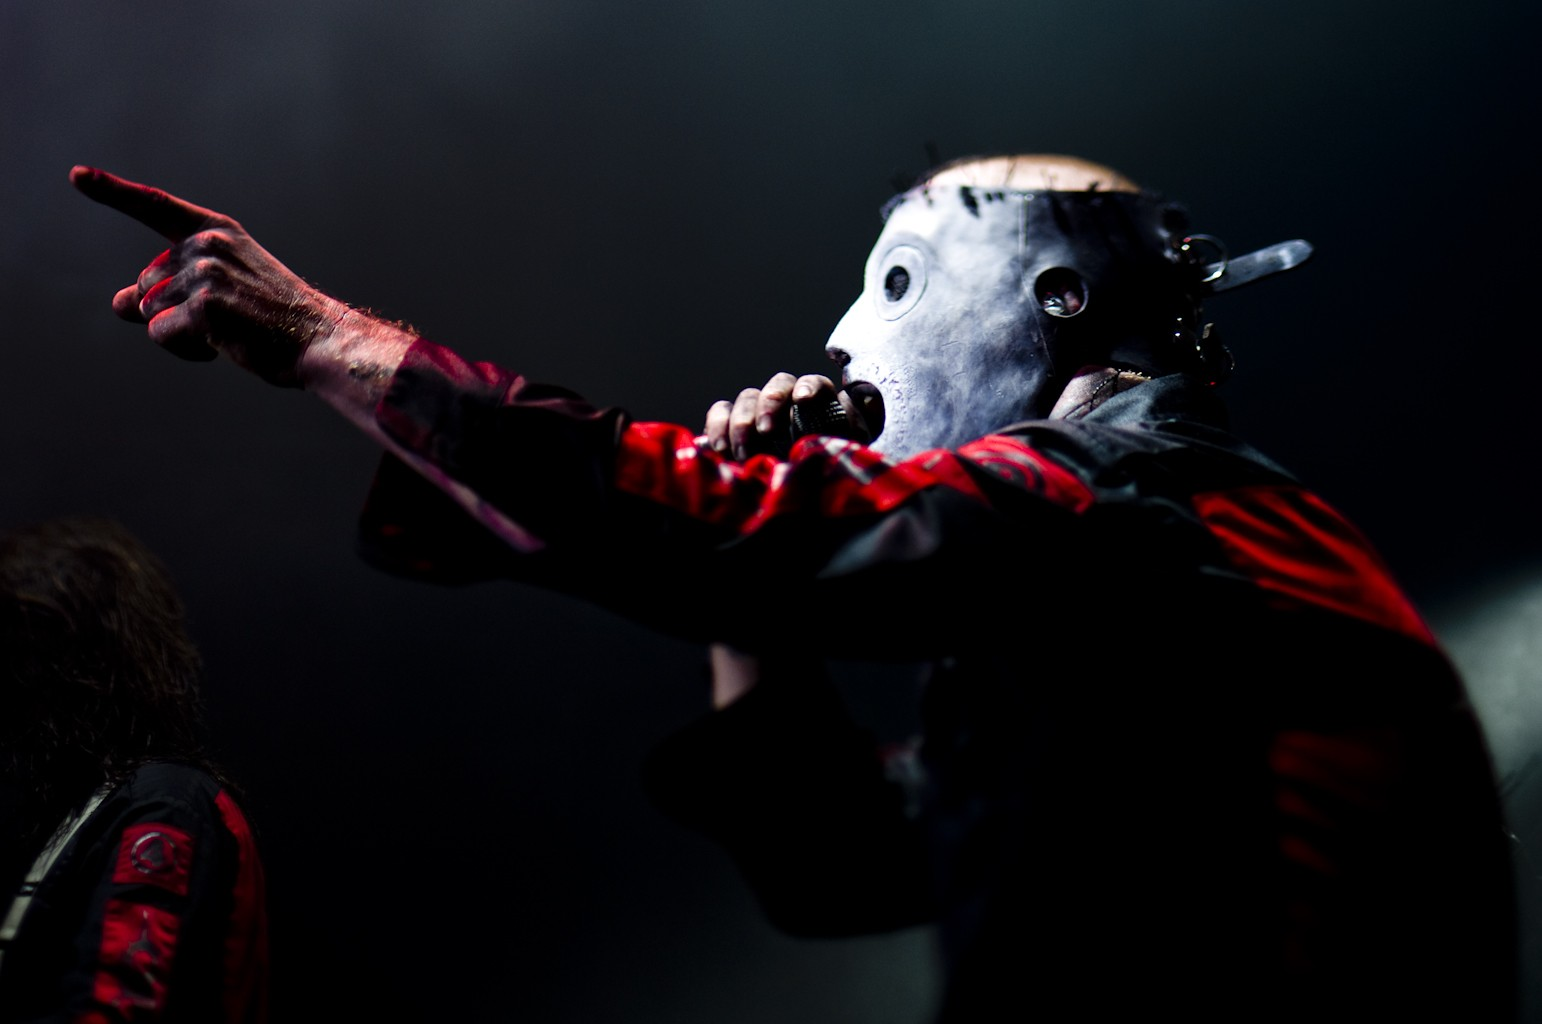 Slipknot Wallpaper And Background Image 1542x1024 Id304350